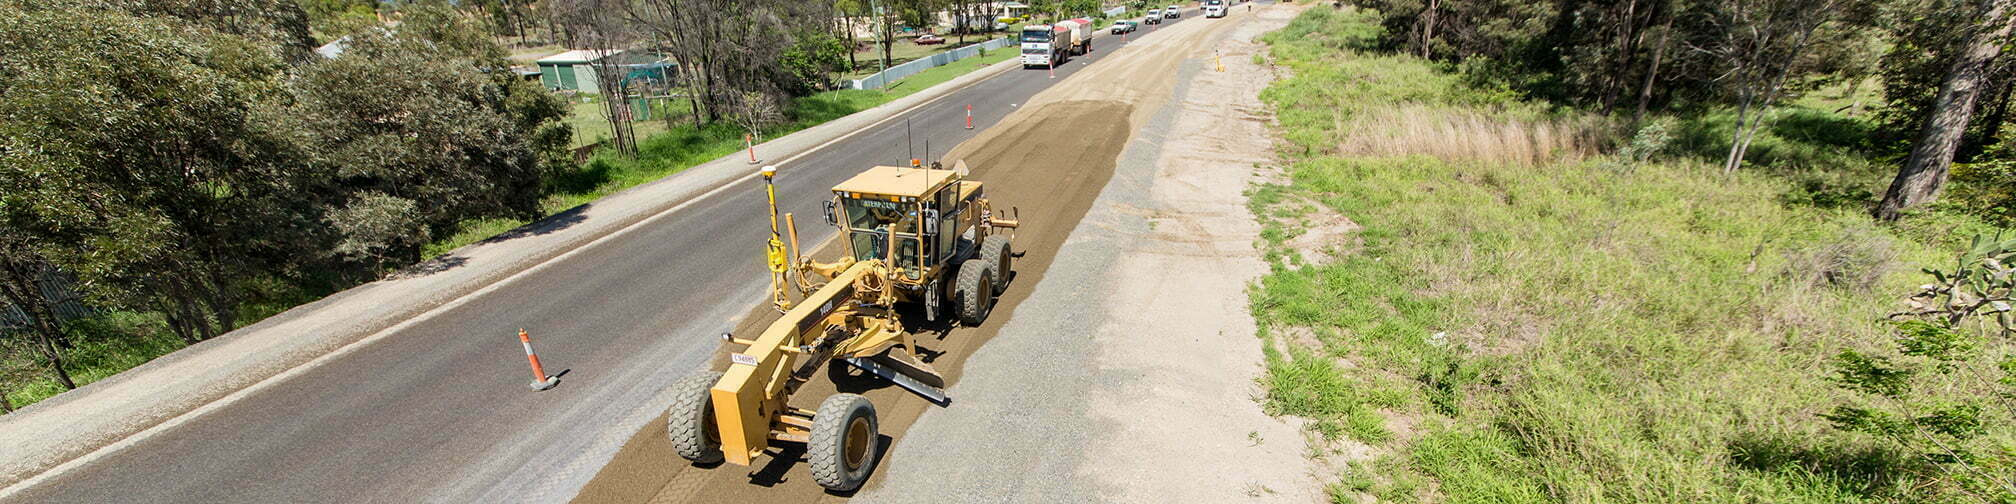 Image of a grader leveling the shoulder of a new road